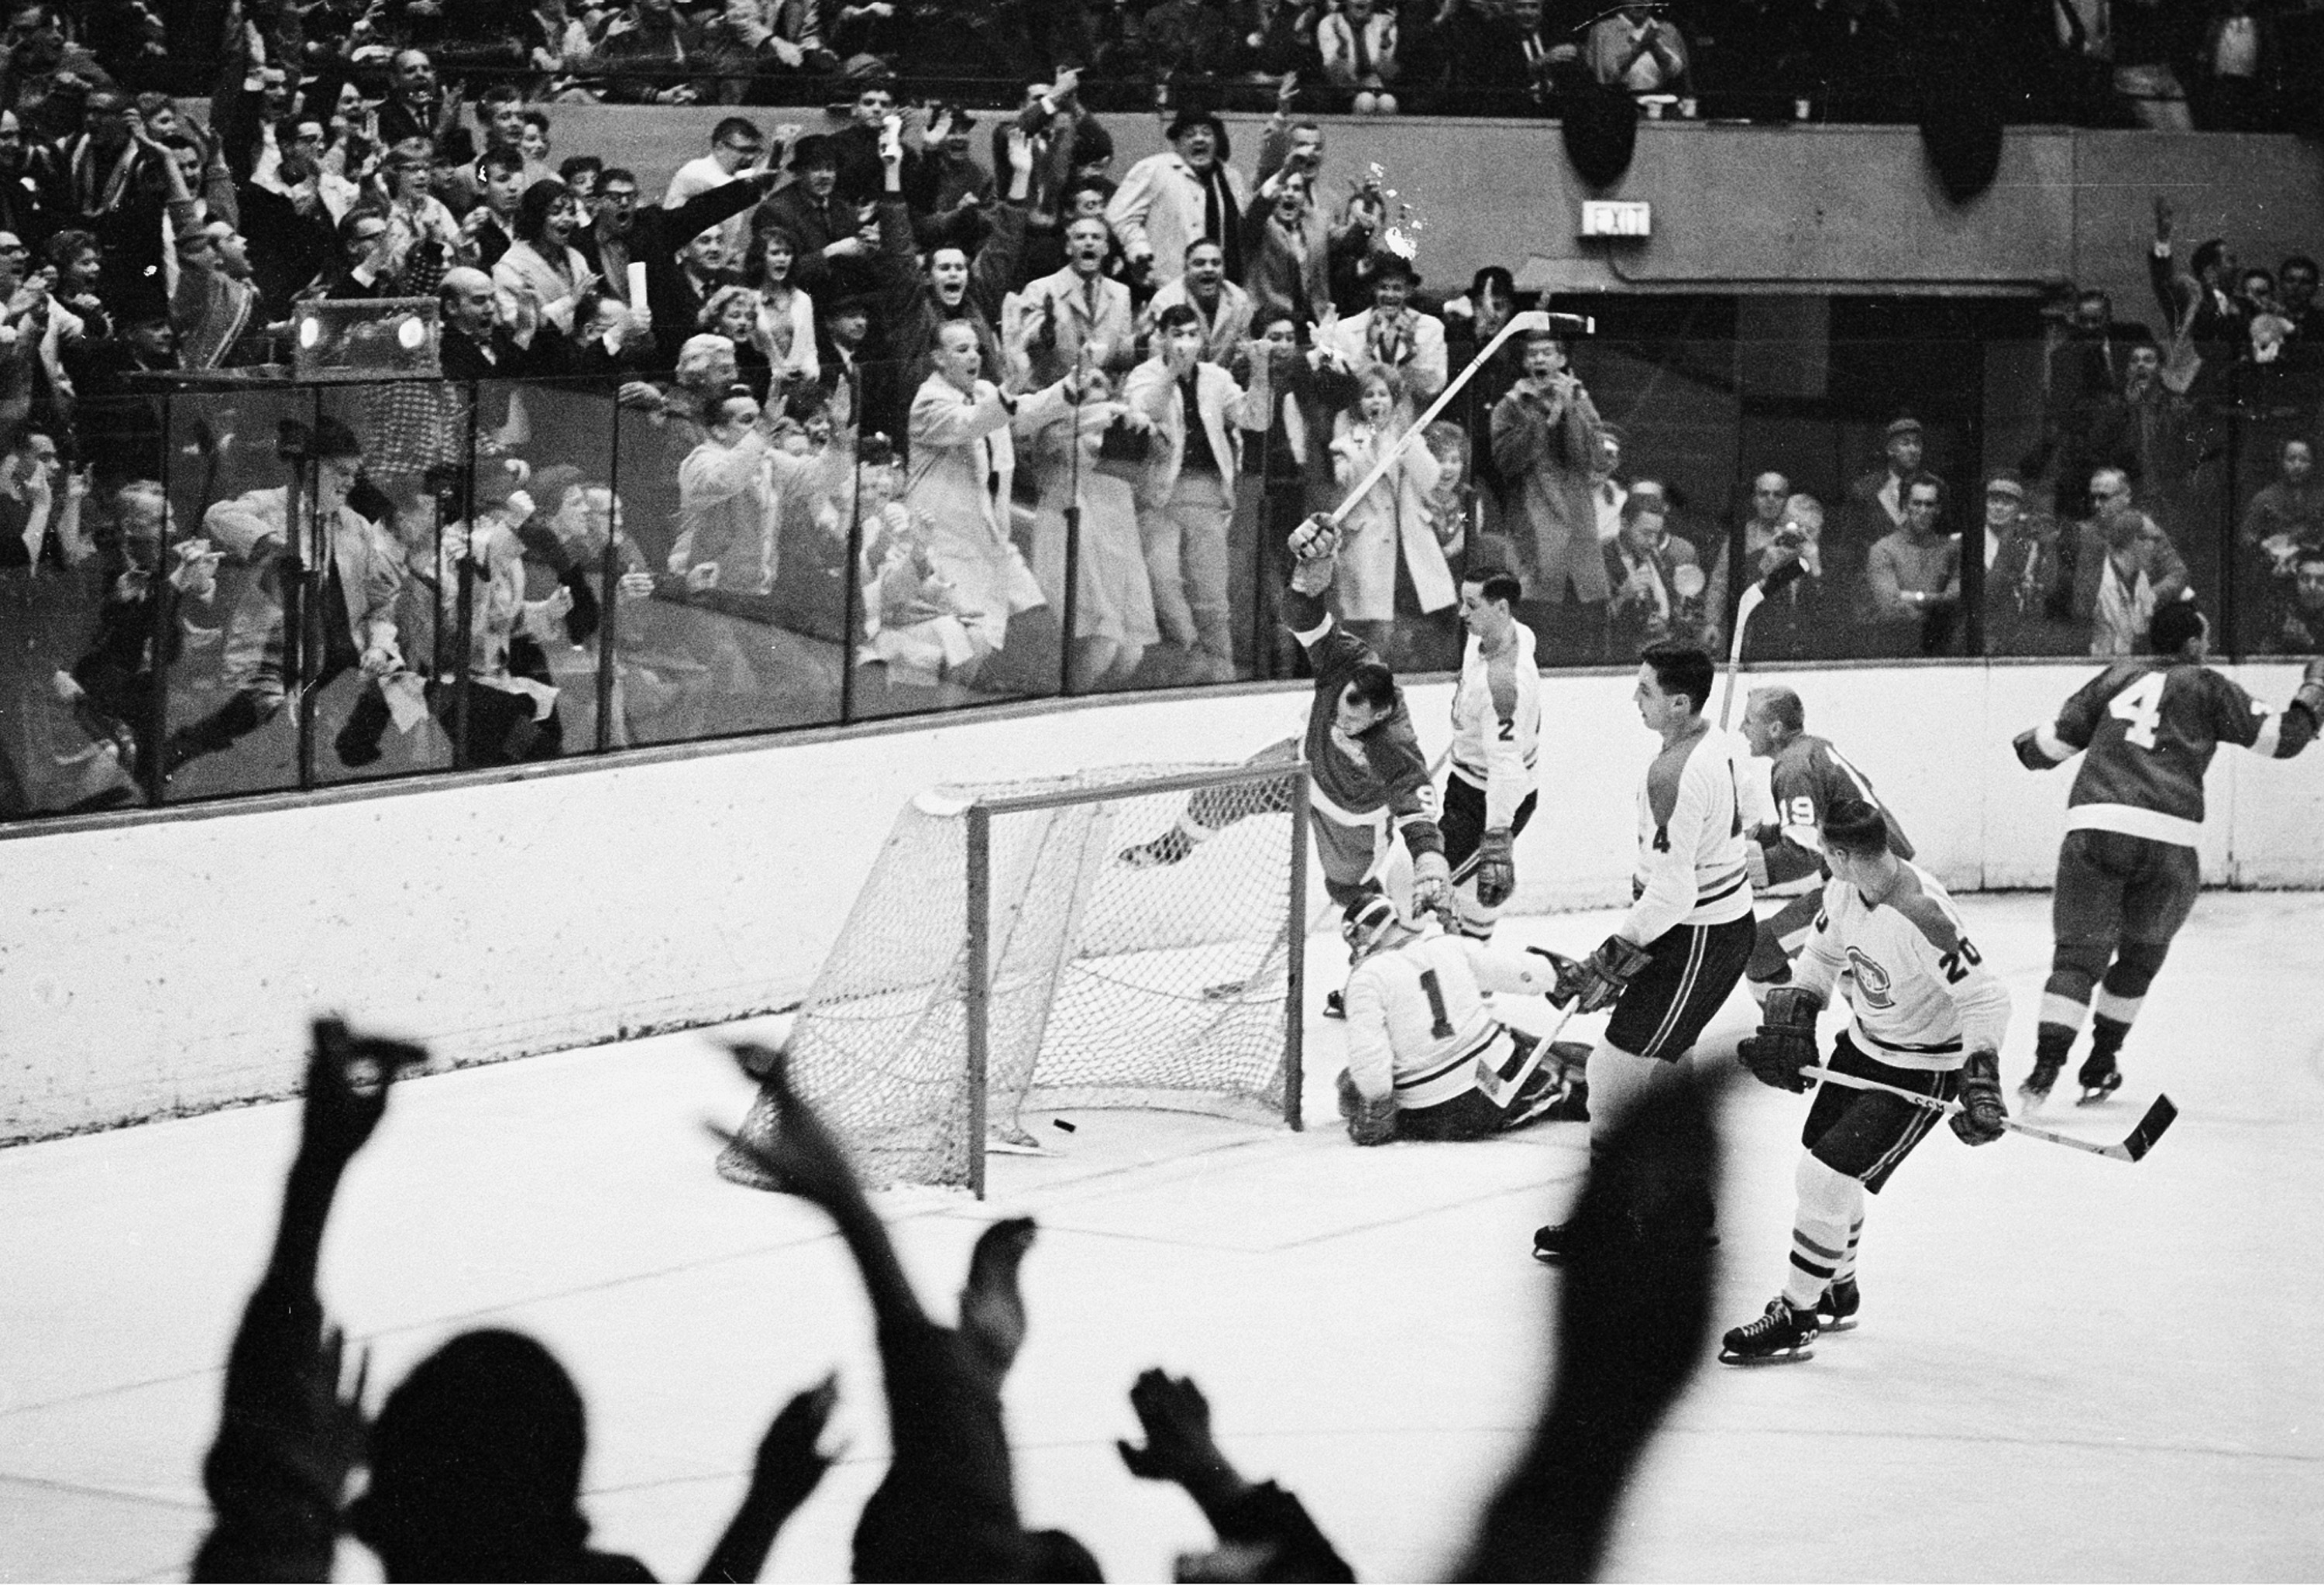 FILE - In this Nov. 10, 1963, file photo, Gordie Howe (9), right-winger for the Detroit Red Wings, lifts his stick high in the air after scoring the 545th goal of his National Hockey League career in the second period against the Montreal Canadiens in Det